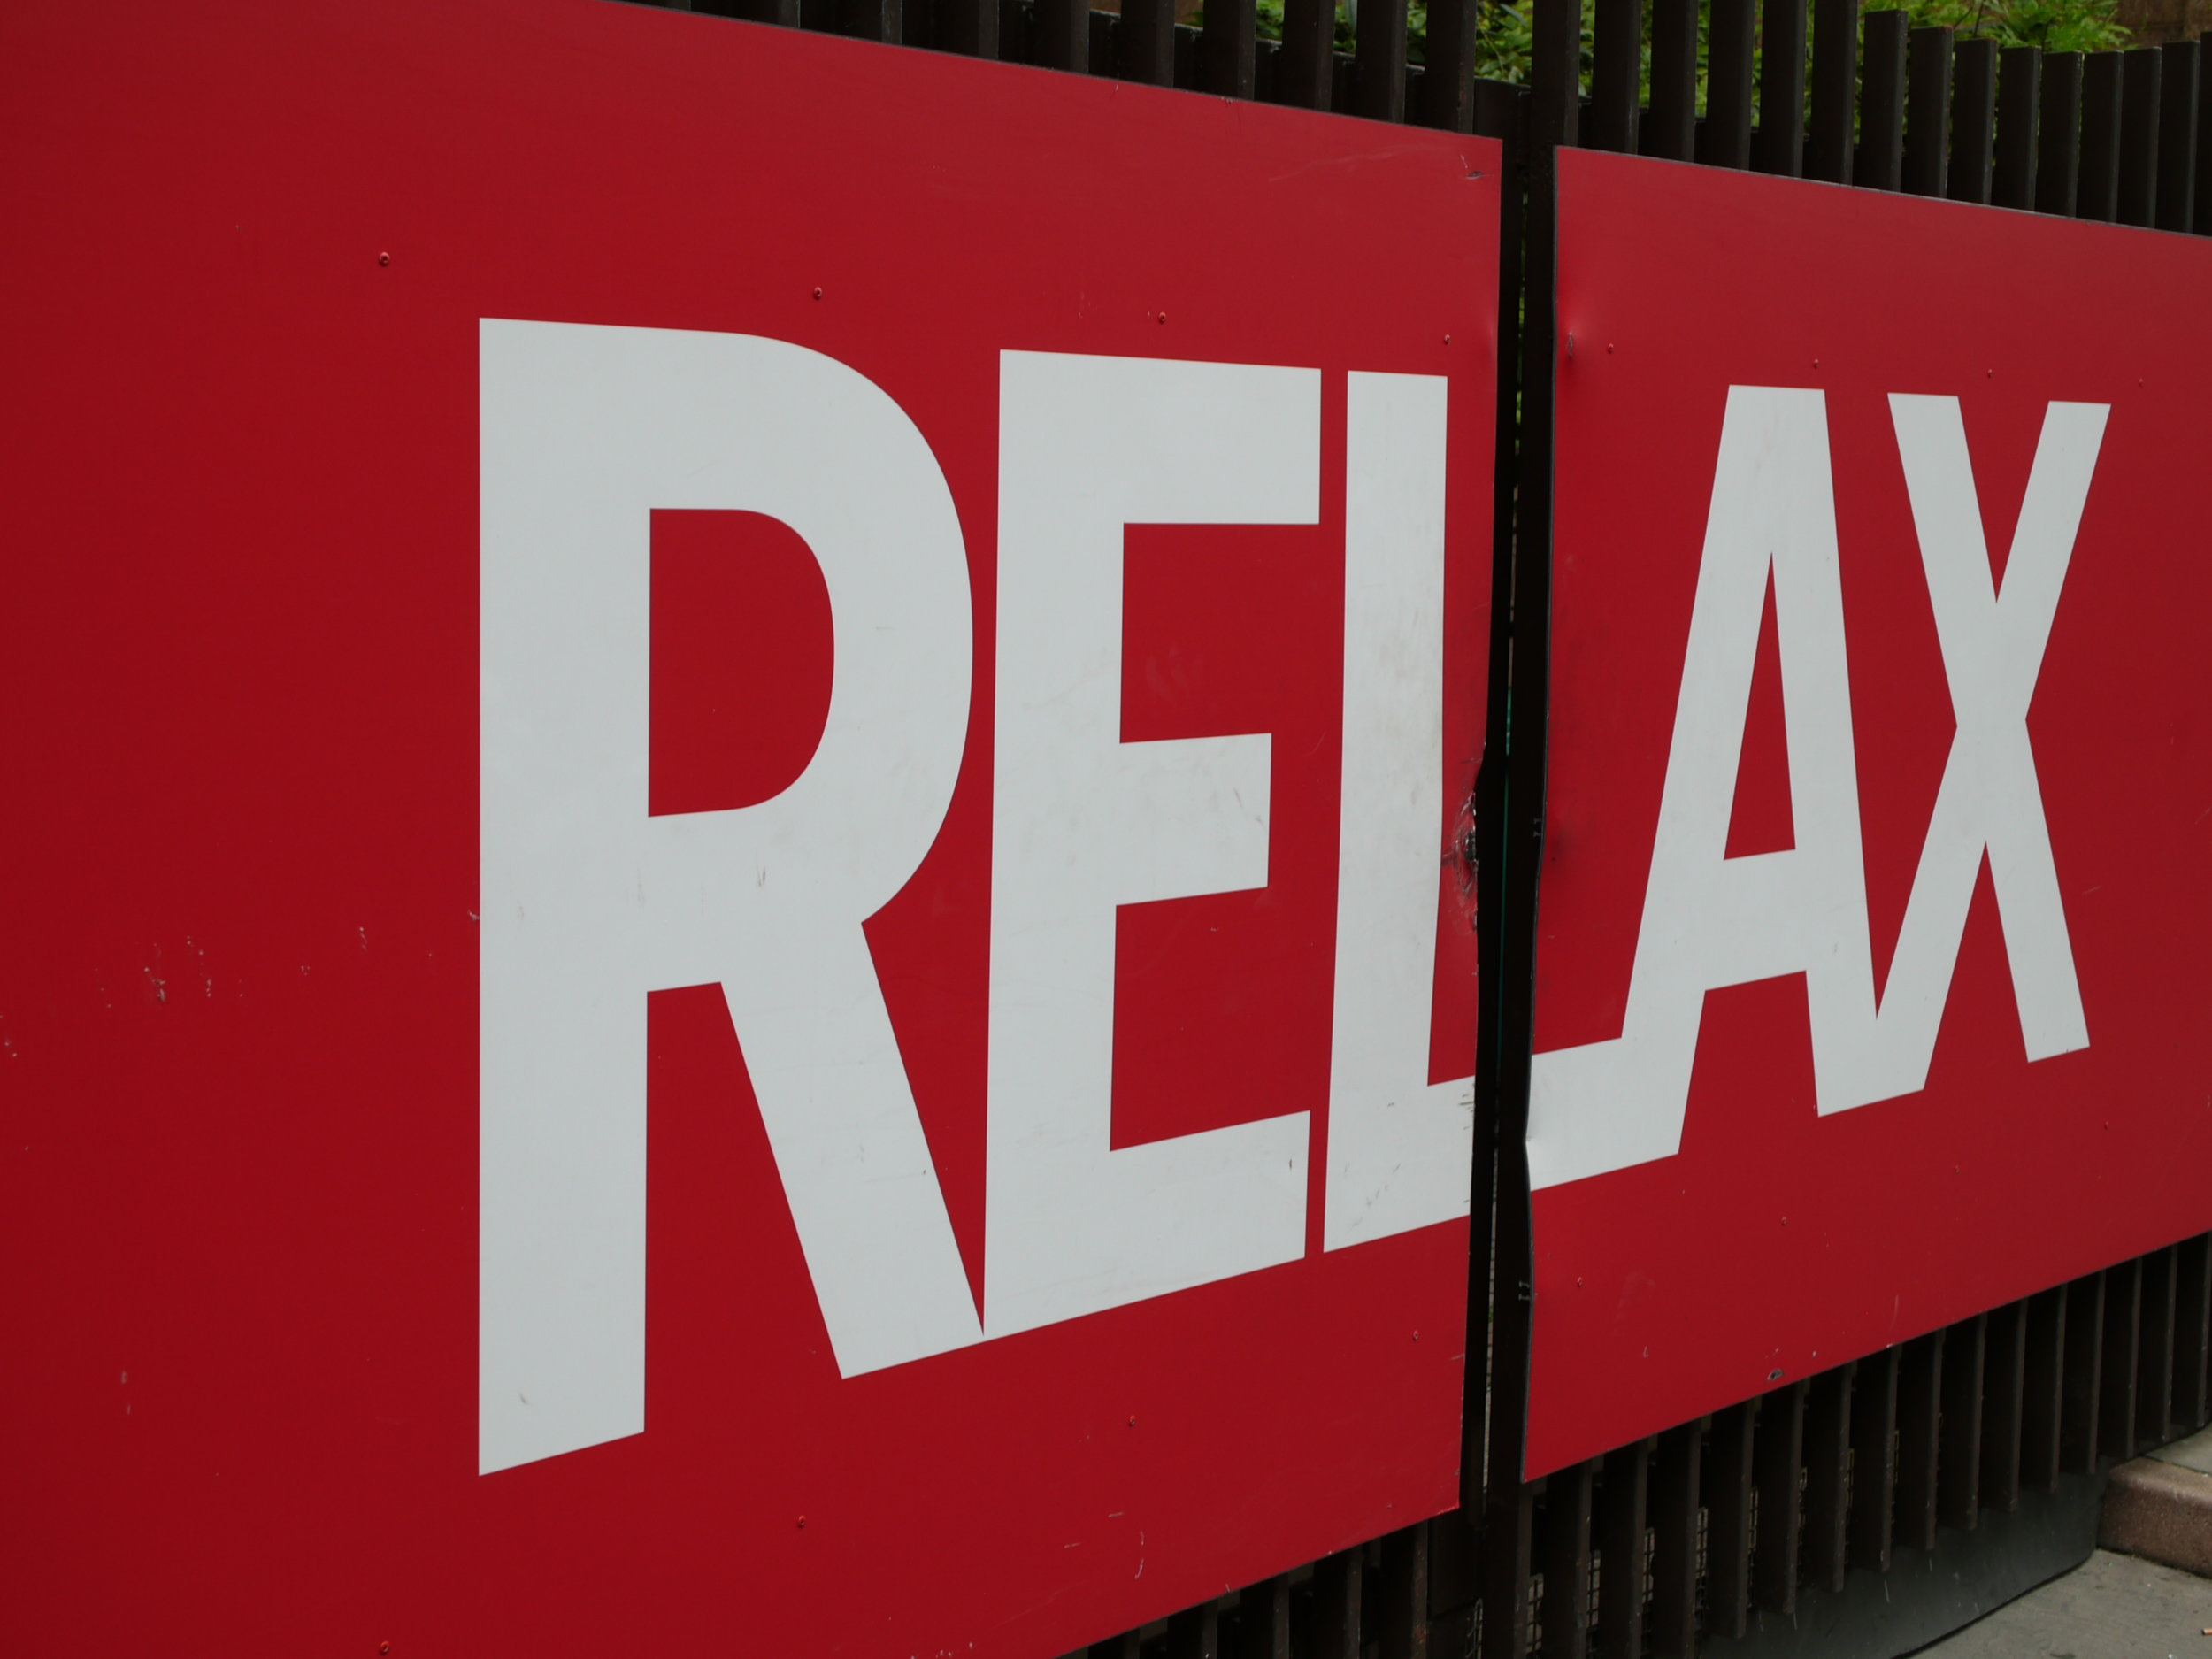 Relax, by Terry Freedman. I'm trying to, I'm trying!